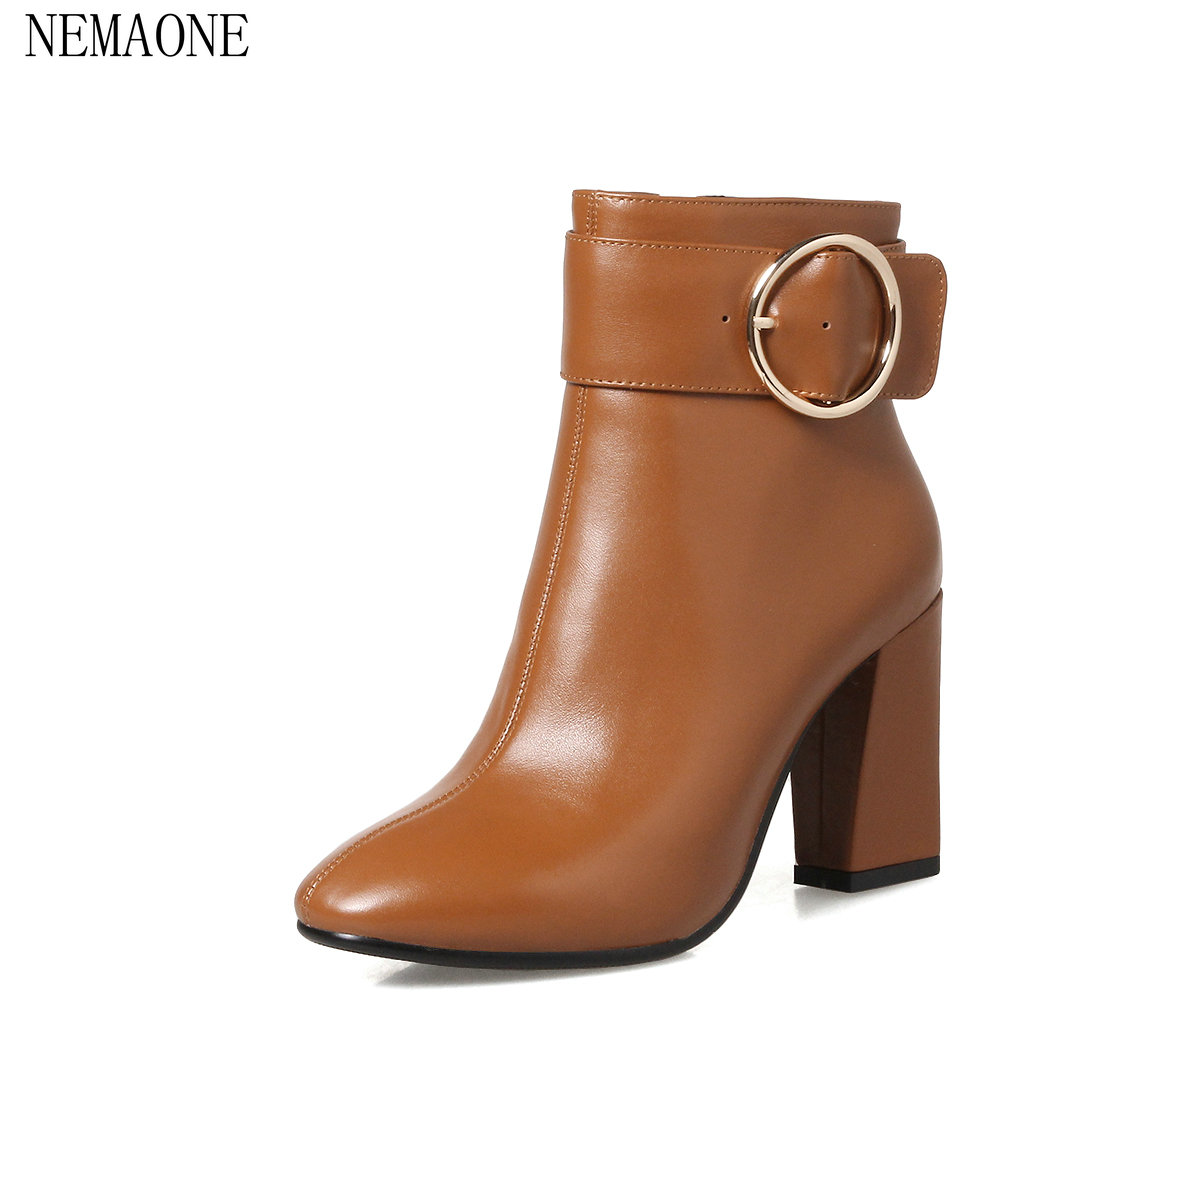 NEMAONE Women Ankle Boots Square High Heel Pointed Toe Zipper Fashion All Match Spring and Autumn Ladies Boots Size 34-43 nemaone 2018 women ankle boots square high heel pointed toe zipper fashion all match spring and autumn ladies boots